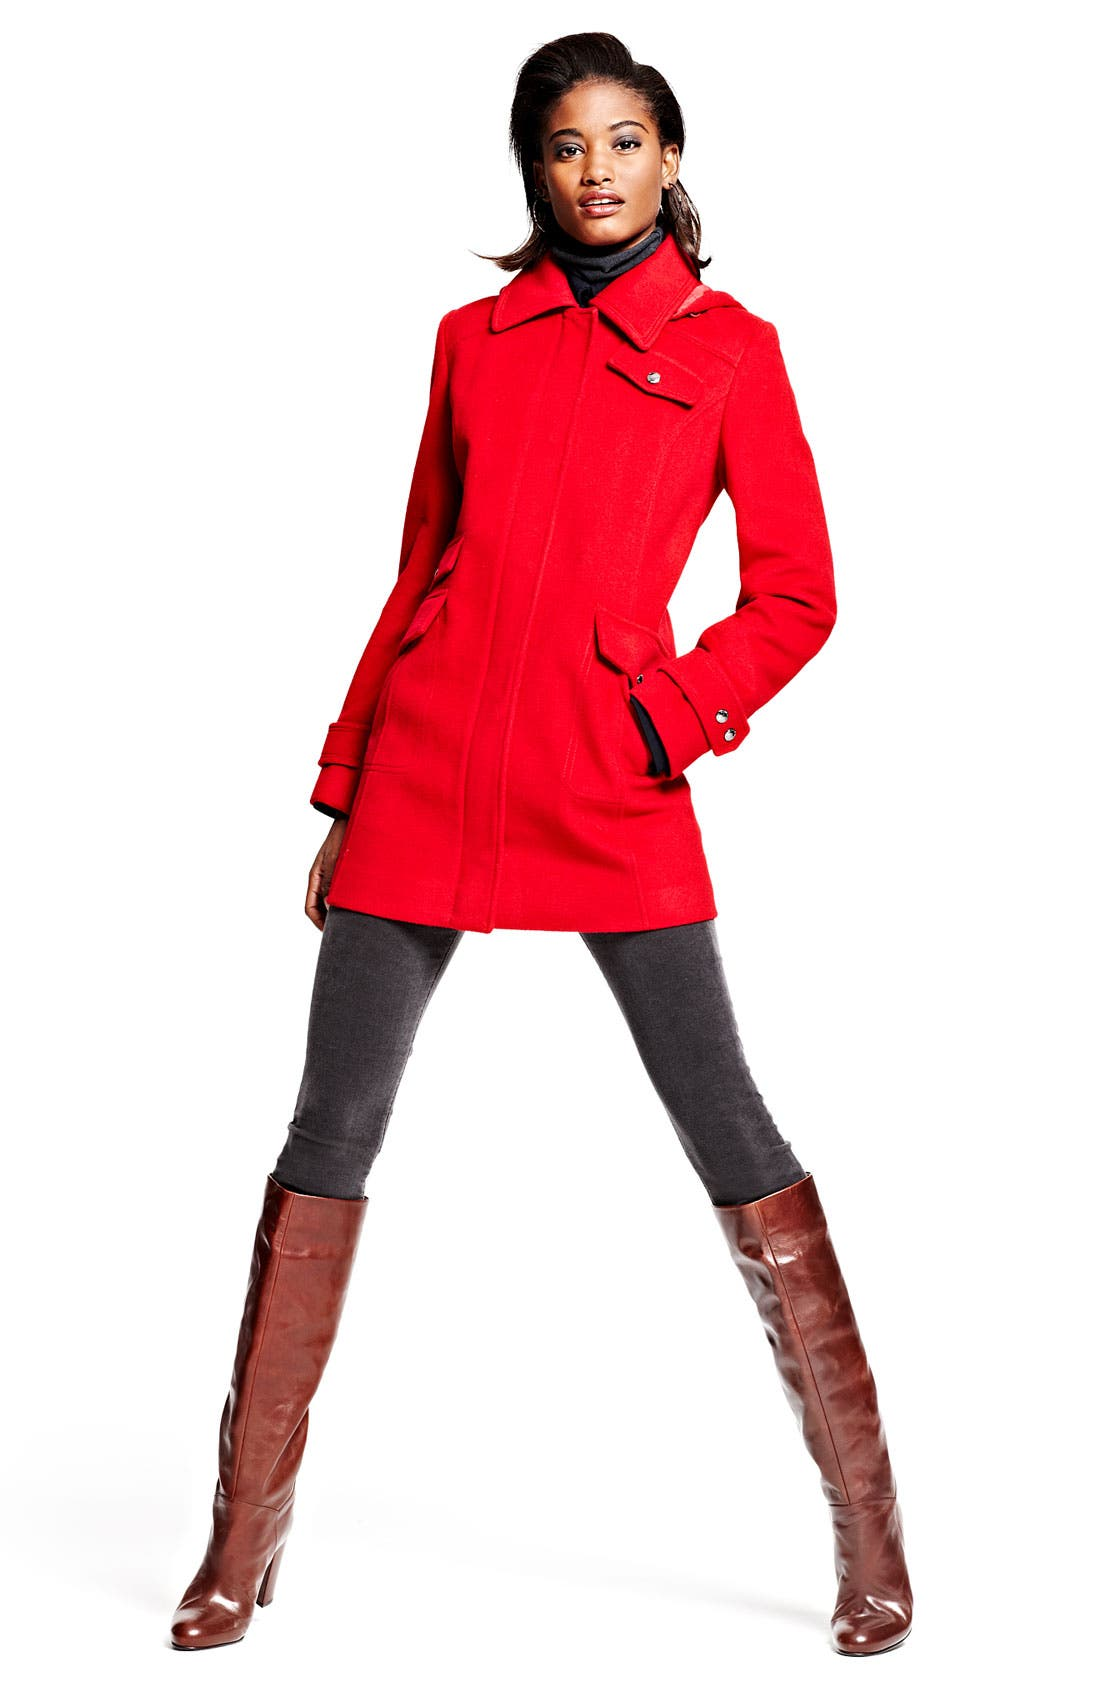 Main Image - Ellen Tracy Coat, KUT from the Kloth Cords & Stuart Weitzman Boot